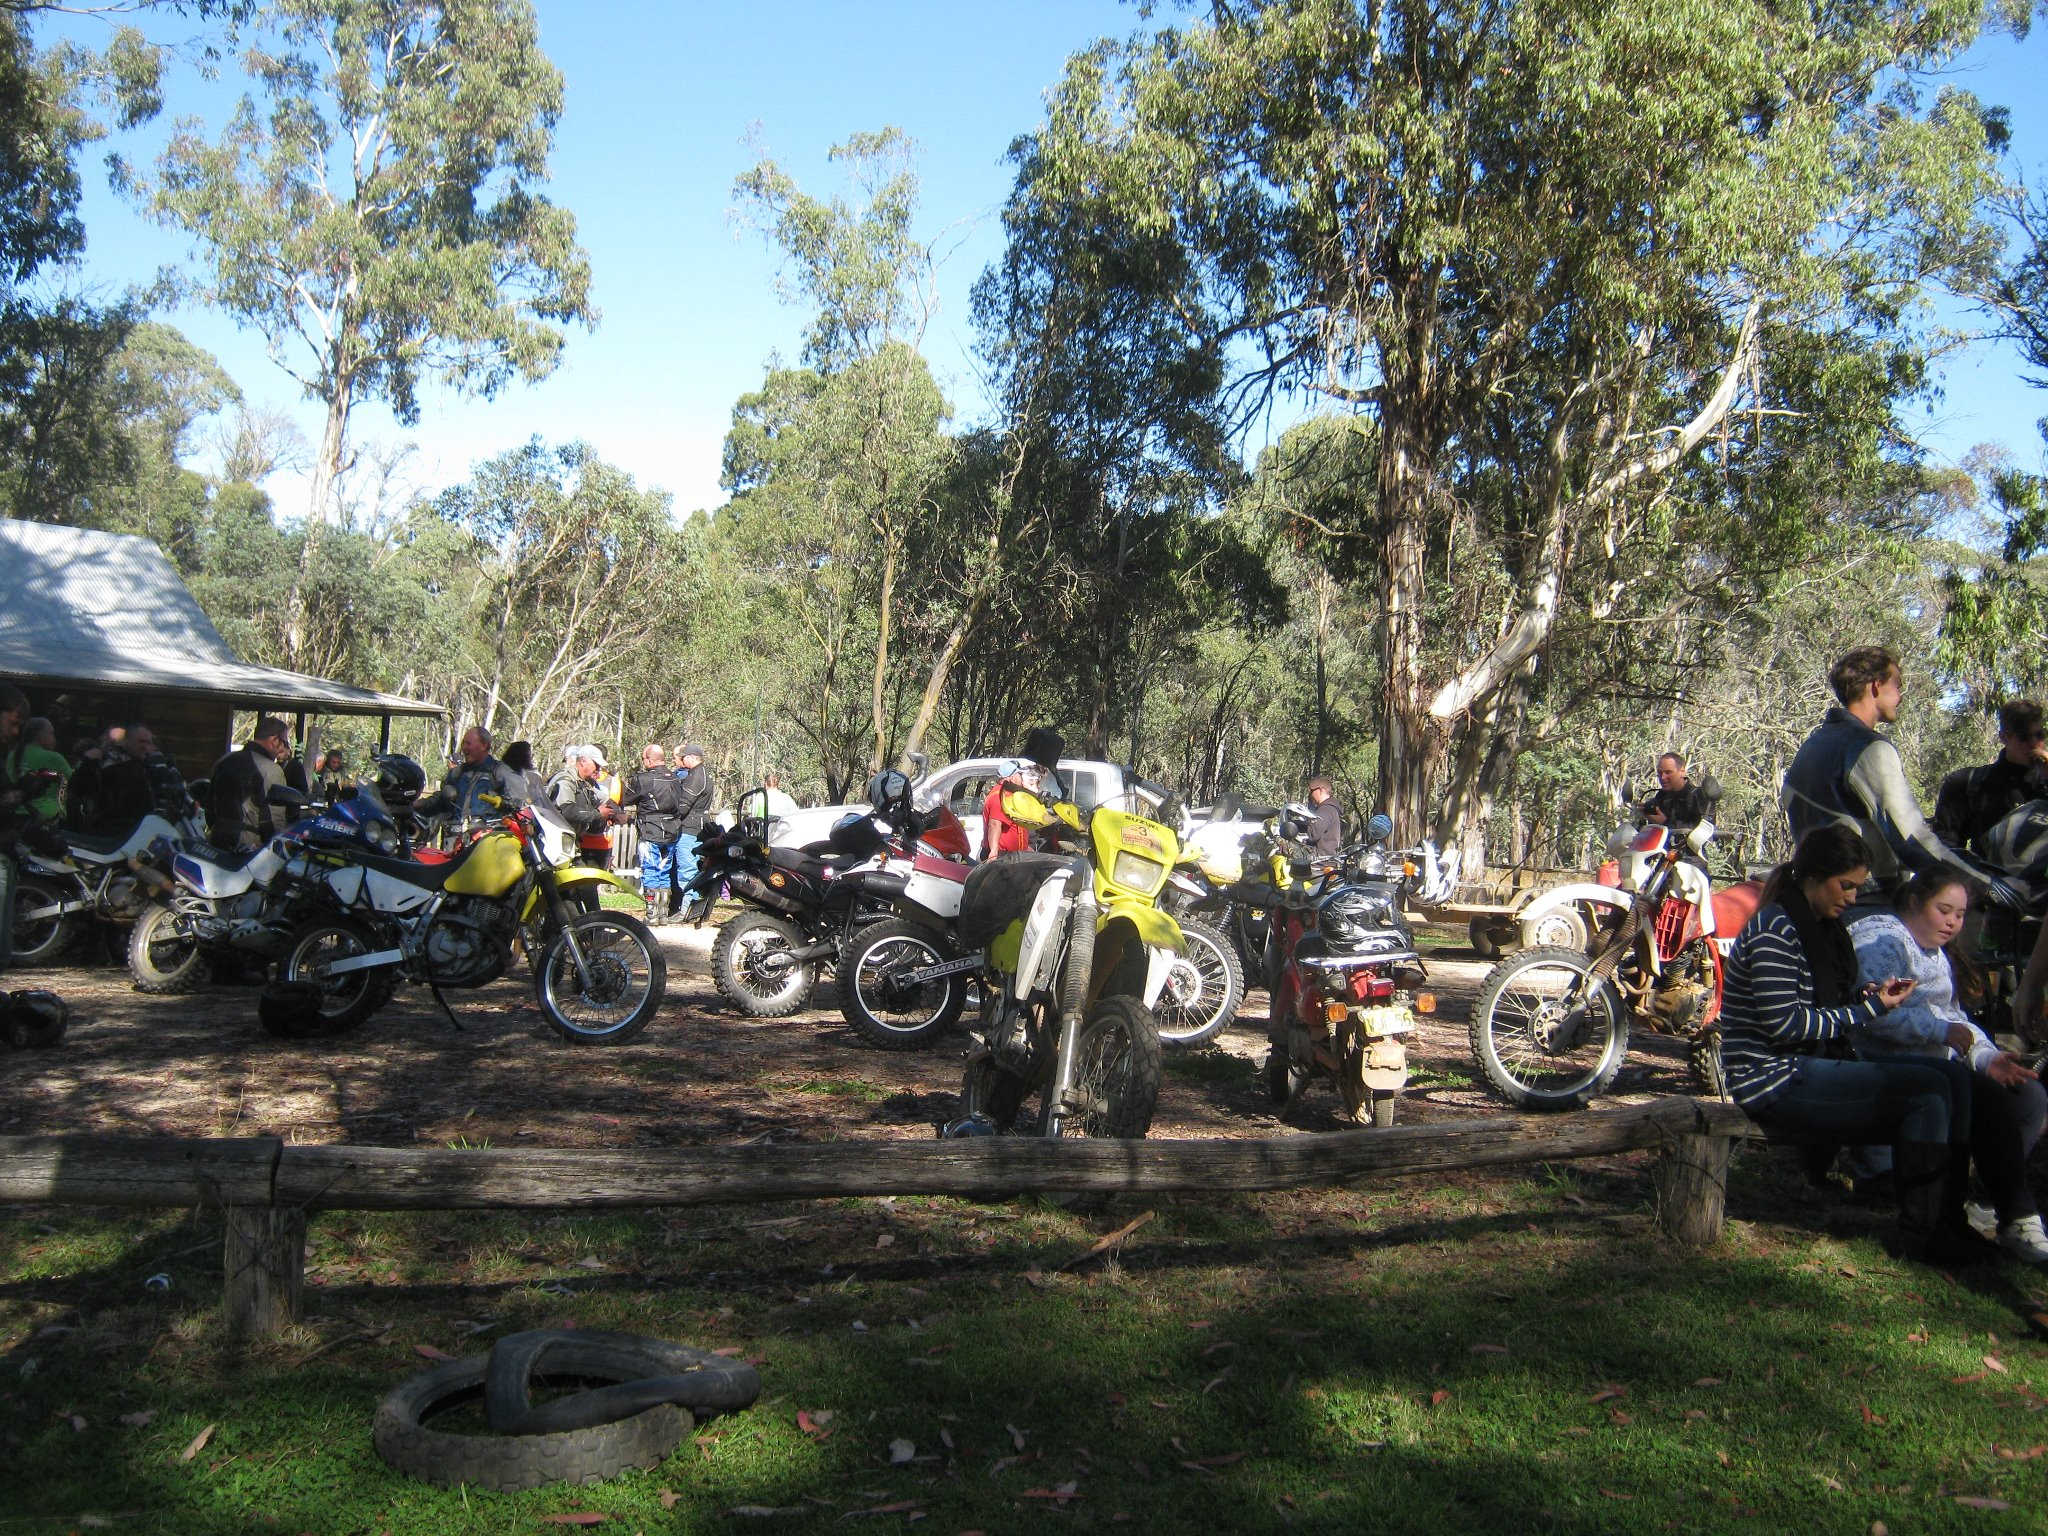 2012 Scrapheap Challenge in the Snowy Mountains